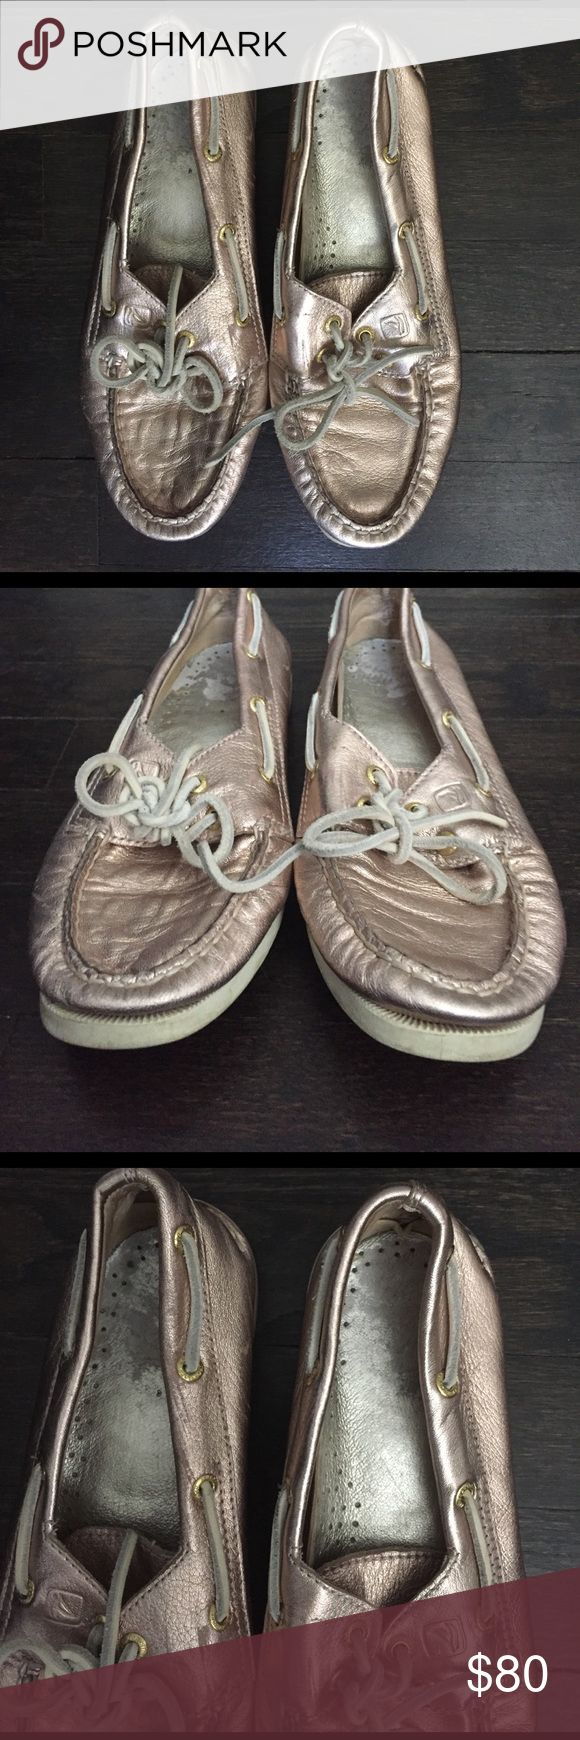 Rose Gold Sperry Top-Sider shoes Great condition rose gold sperry top-sider shoes! Size 7, fits true to size Sperry Top-Sider Shoes Flats & Loafers